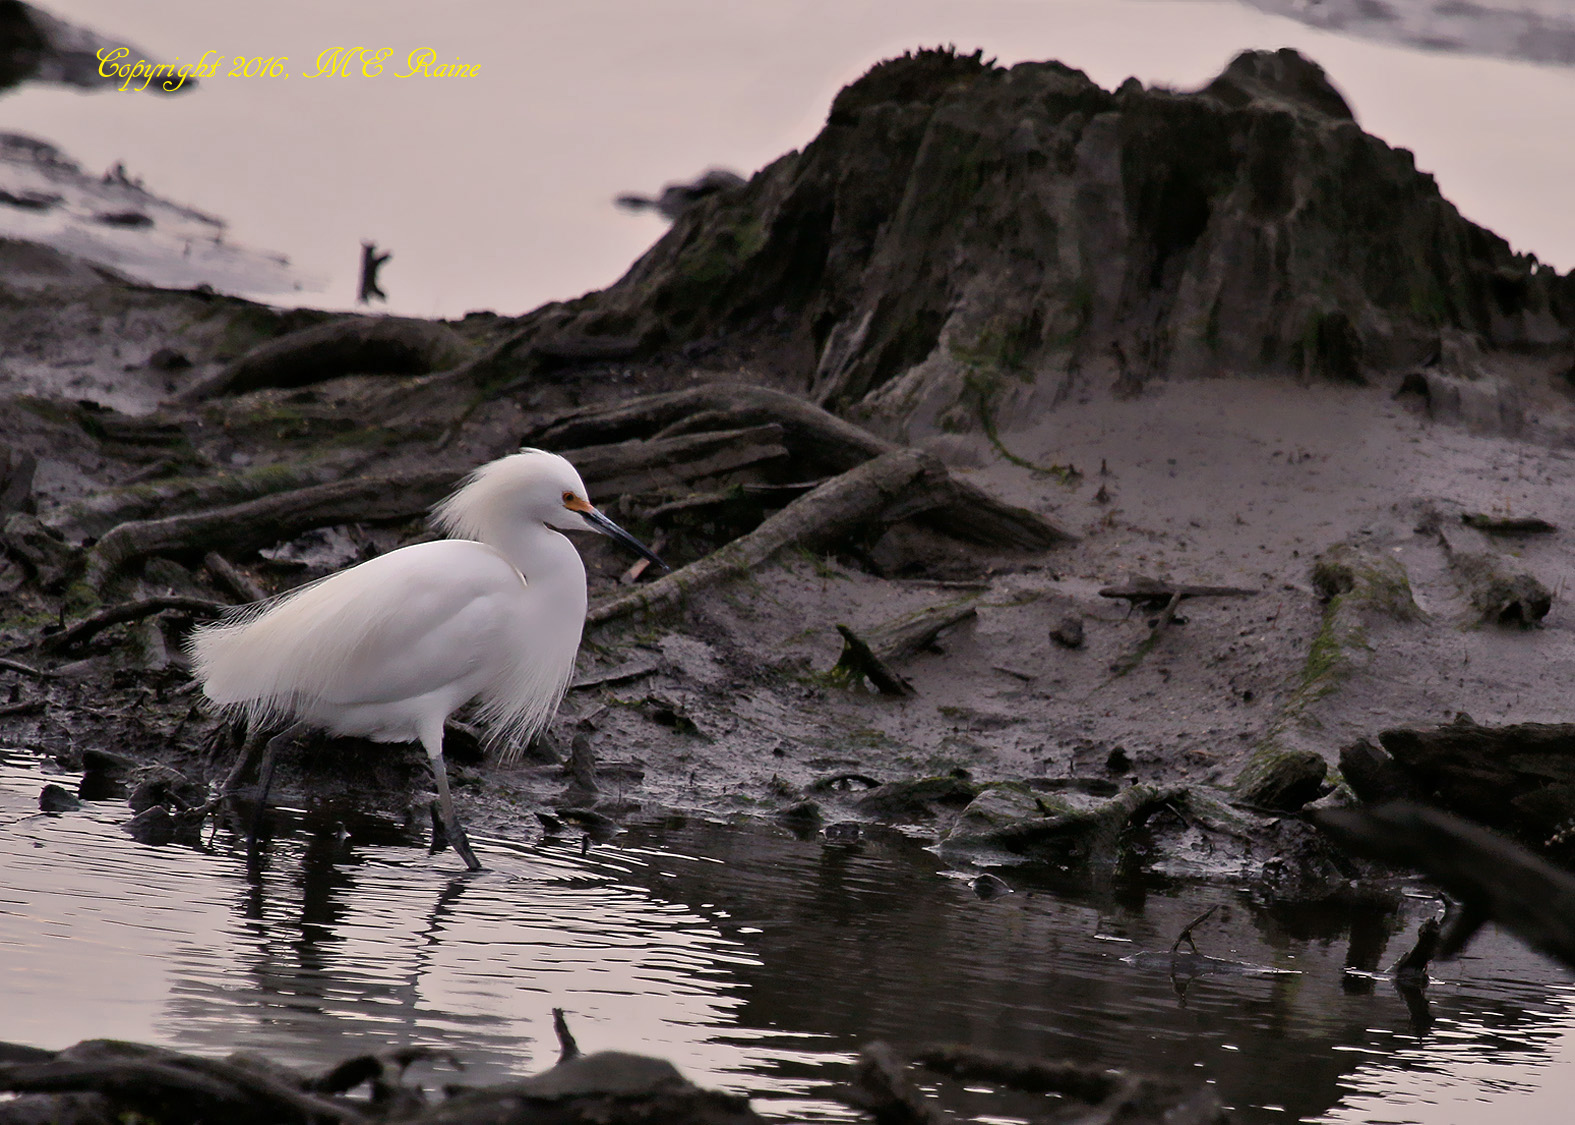 313 B EgretS 053af MCM Mdwlnds NJ Twilight Hunting 040916 OK FLICKR